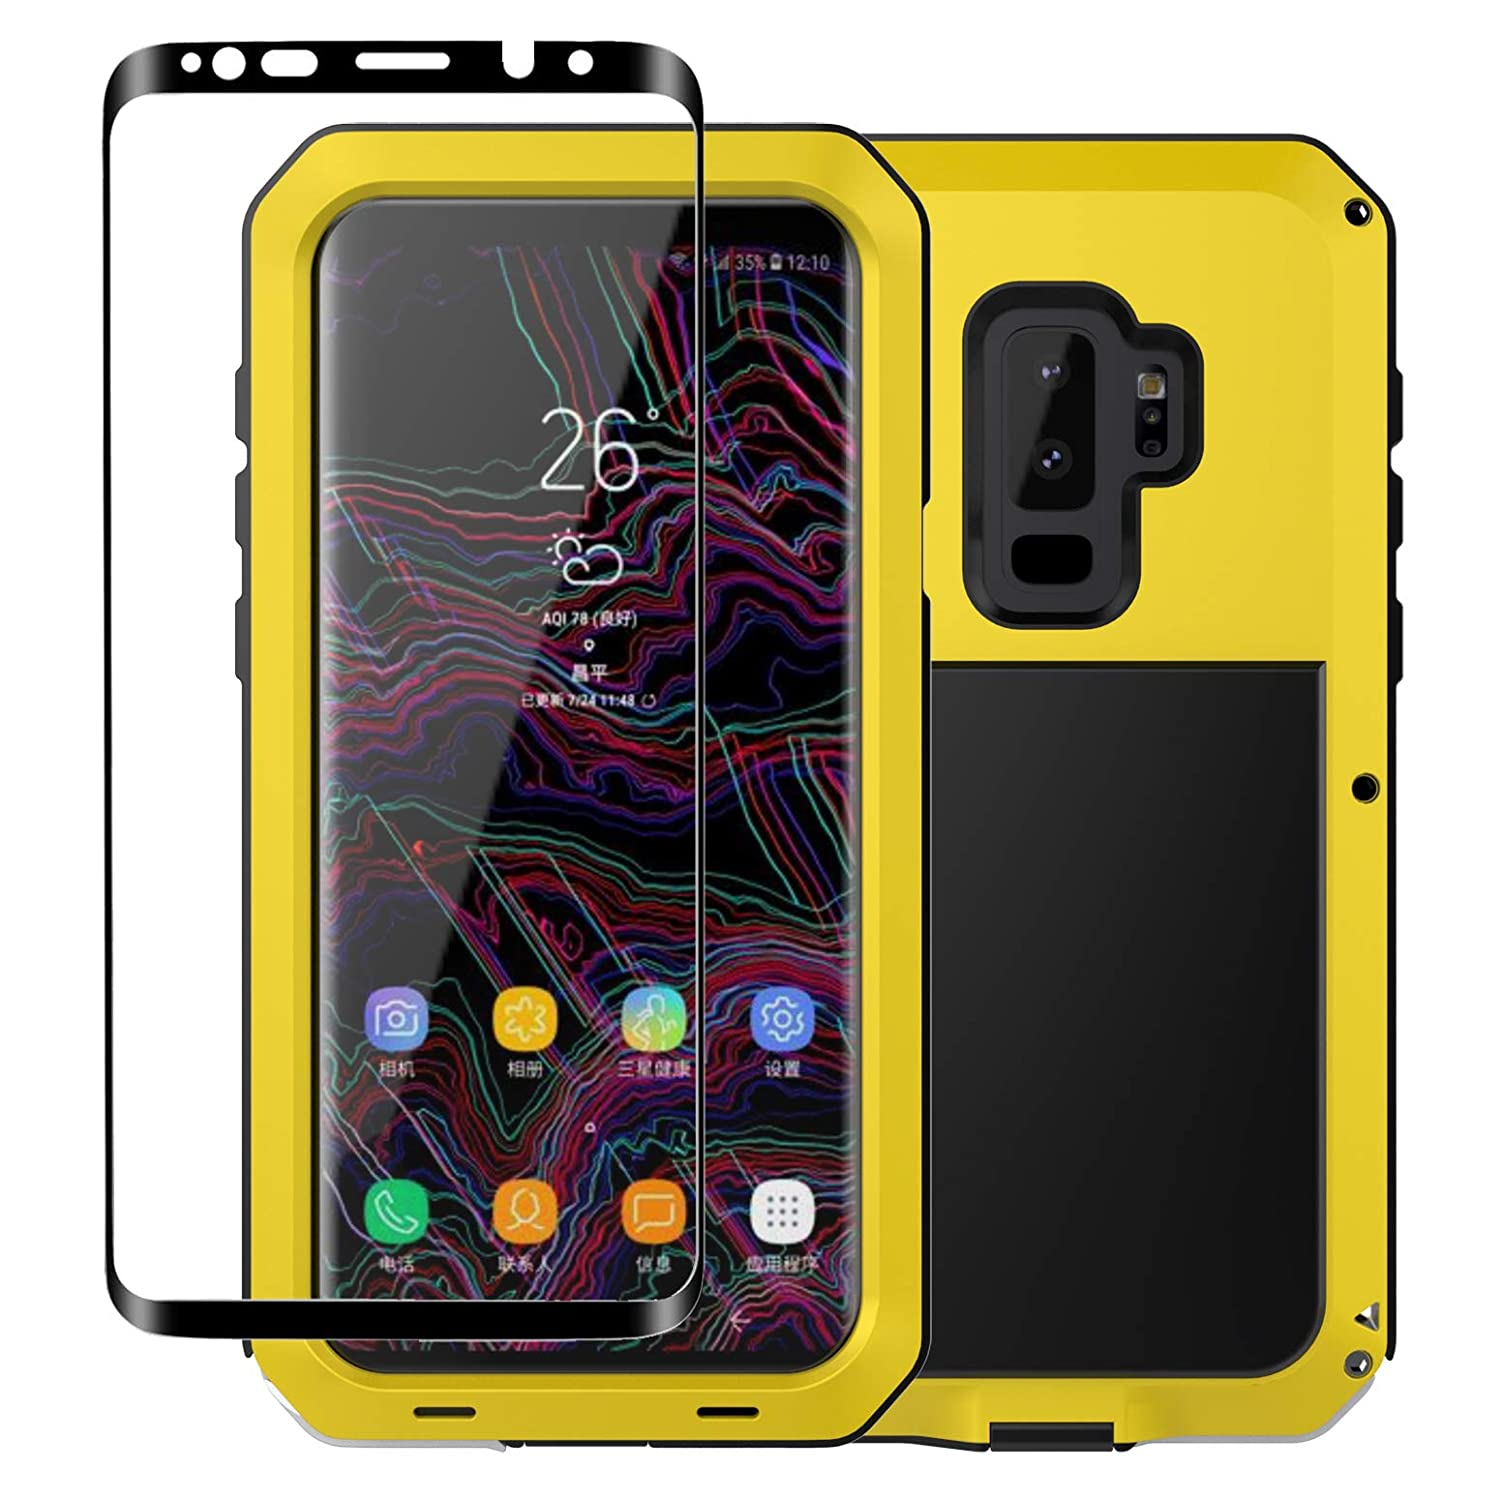 Galaxy S9 Plus Case,Tomplus Armor Tank Aluminum Metal Shockproof Military Heavy Duty Protector Cover Hard Case for Samsung Galaxy S9 Plus (Yellow)